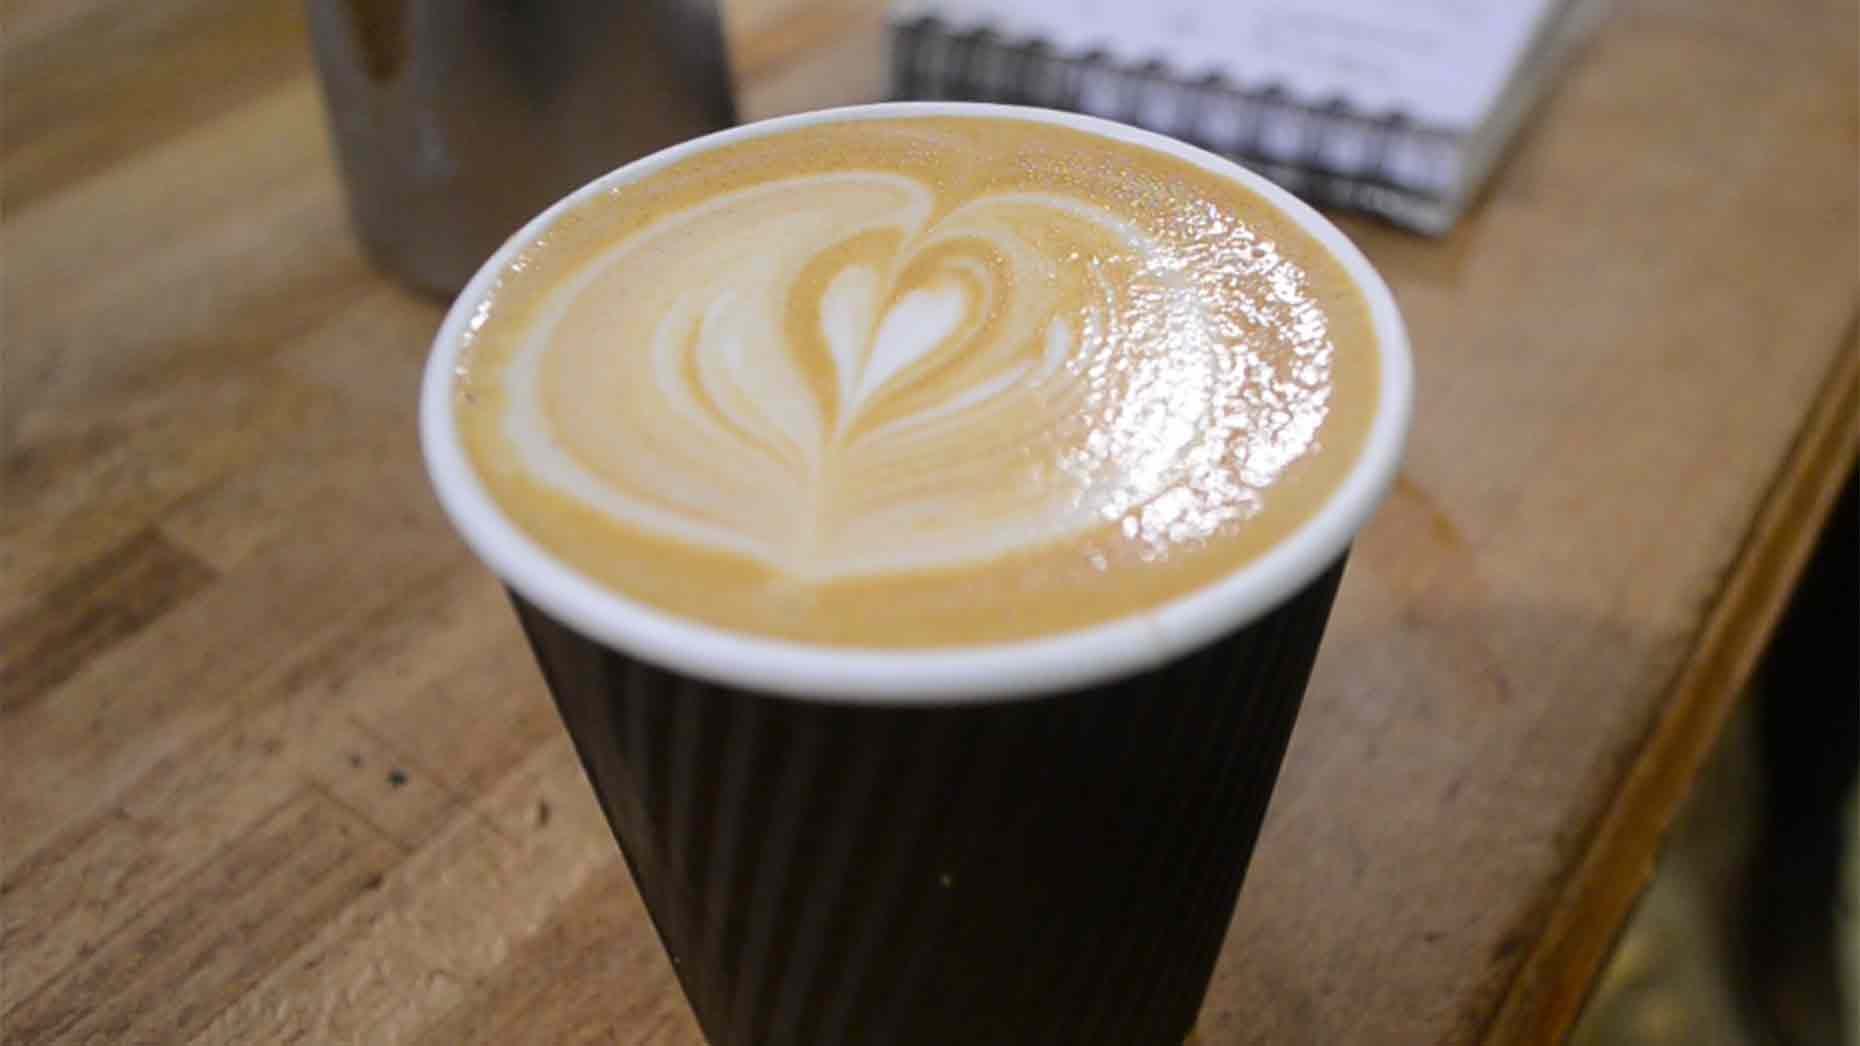 MPs demand 25p 'latte levy' on cups